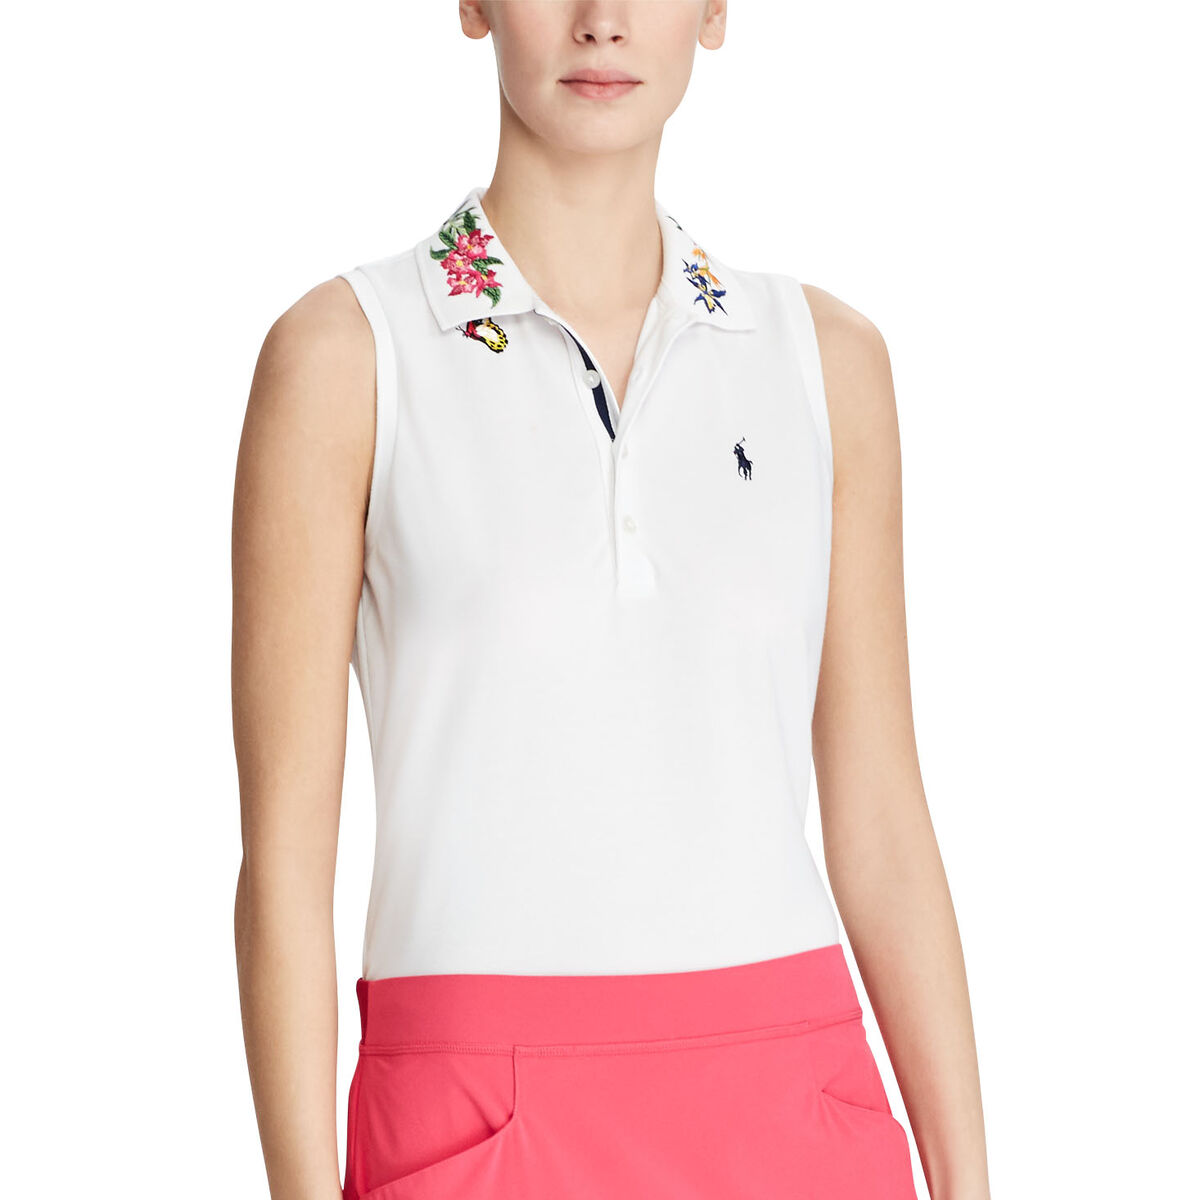 4f2b426f45b75 Images. Ralph Lauren Golf Embroidered Sleeveless Polo